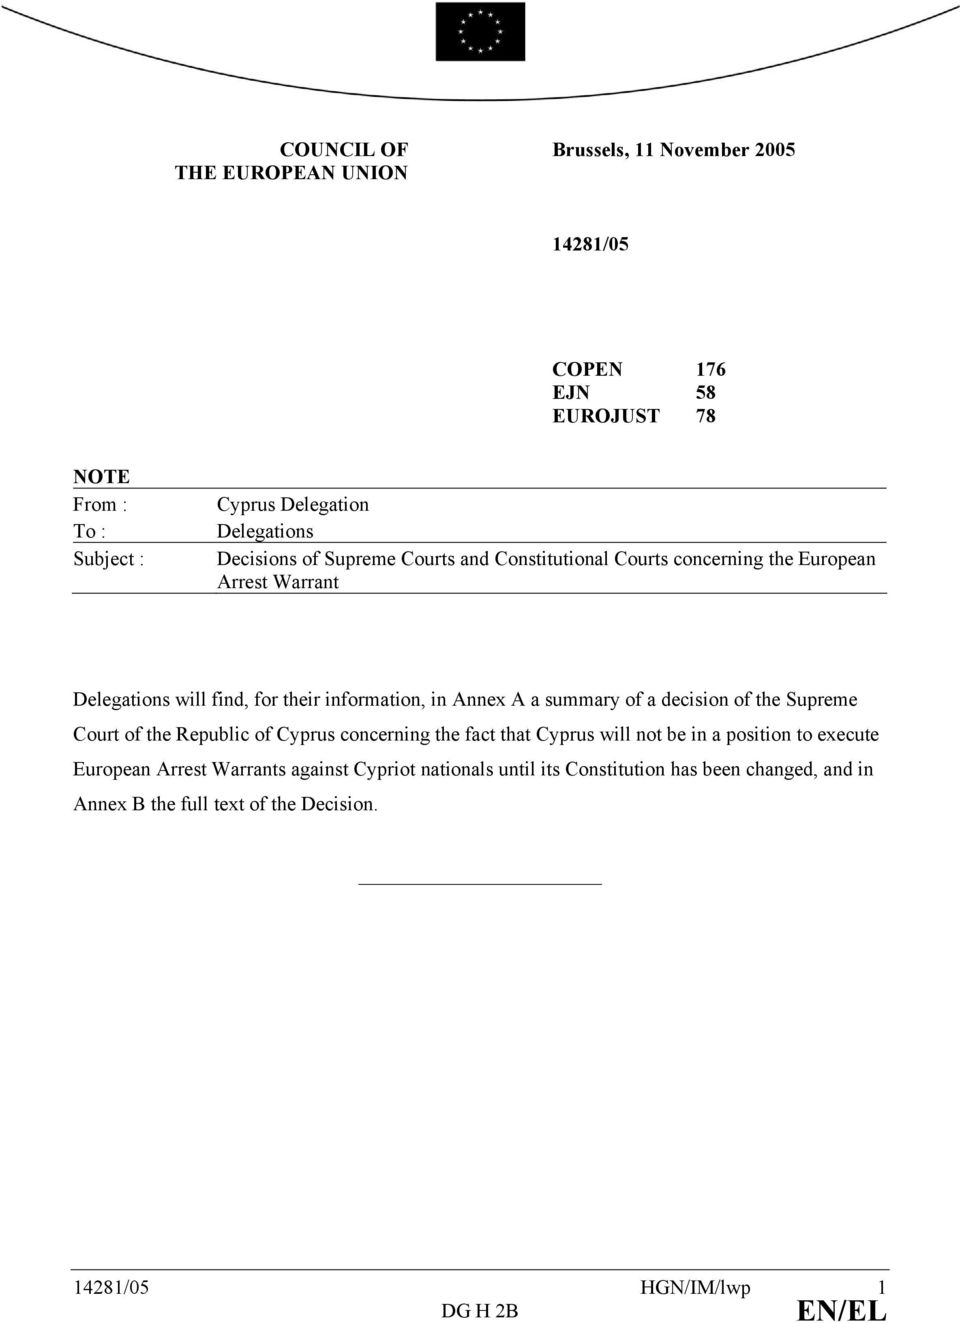 summary of a decision of the Supreme Court of the Republic of Cyprus concerning the fact that Cyprus will not be in a position to execute European Arrest